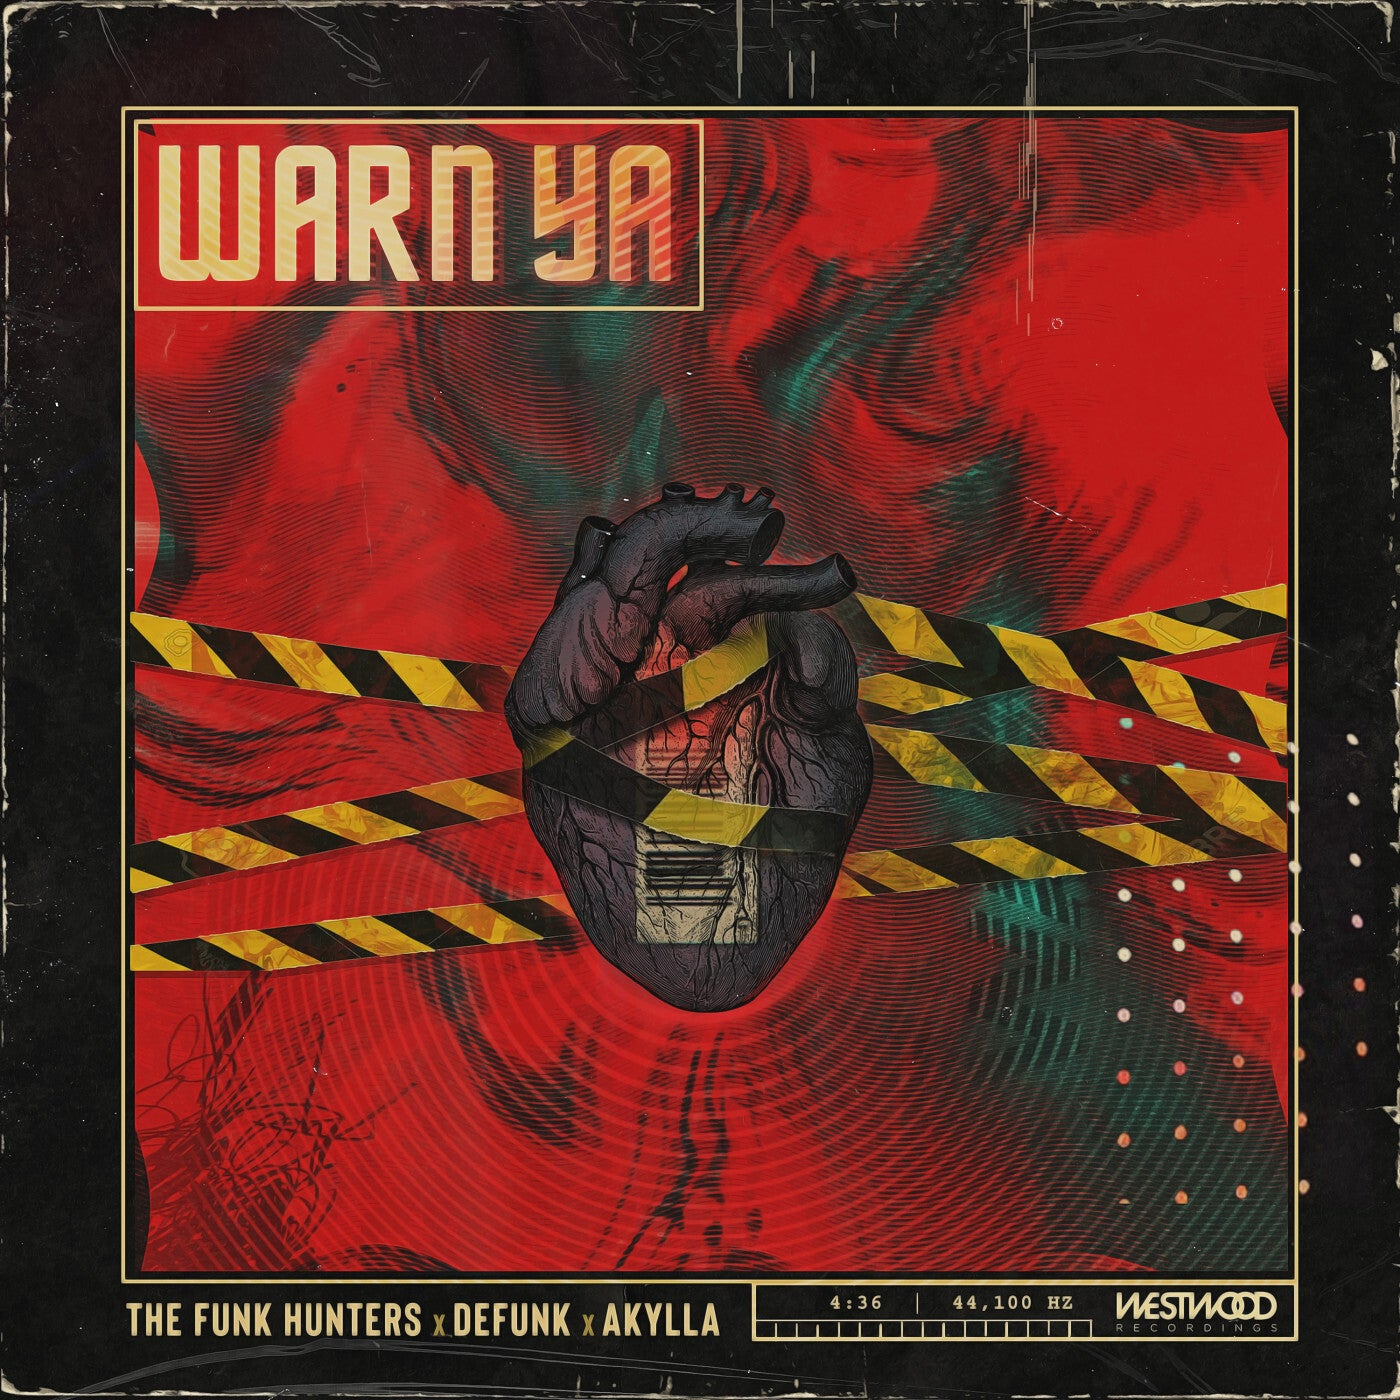 Warn Ya (Original Mix)